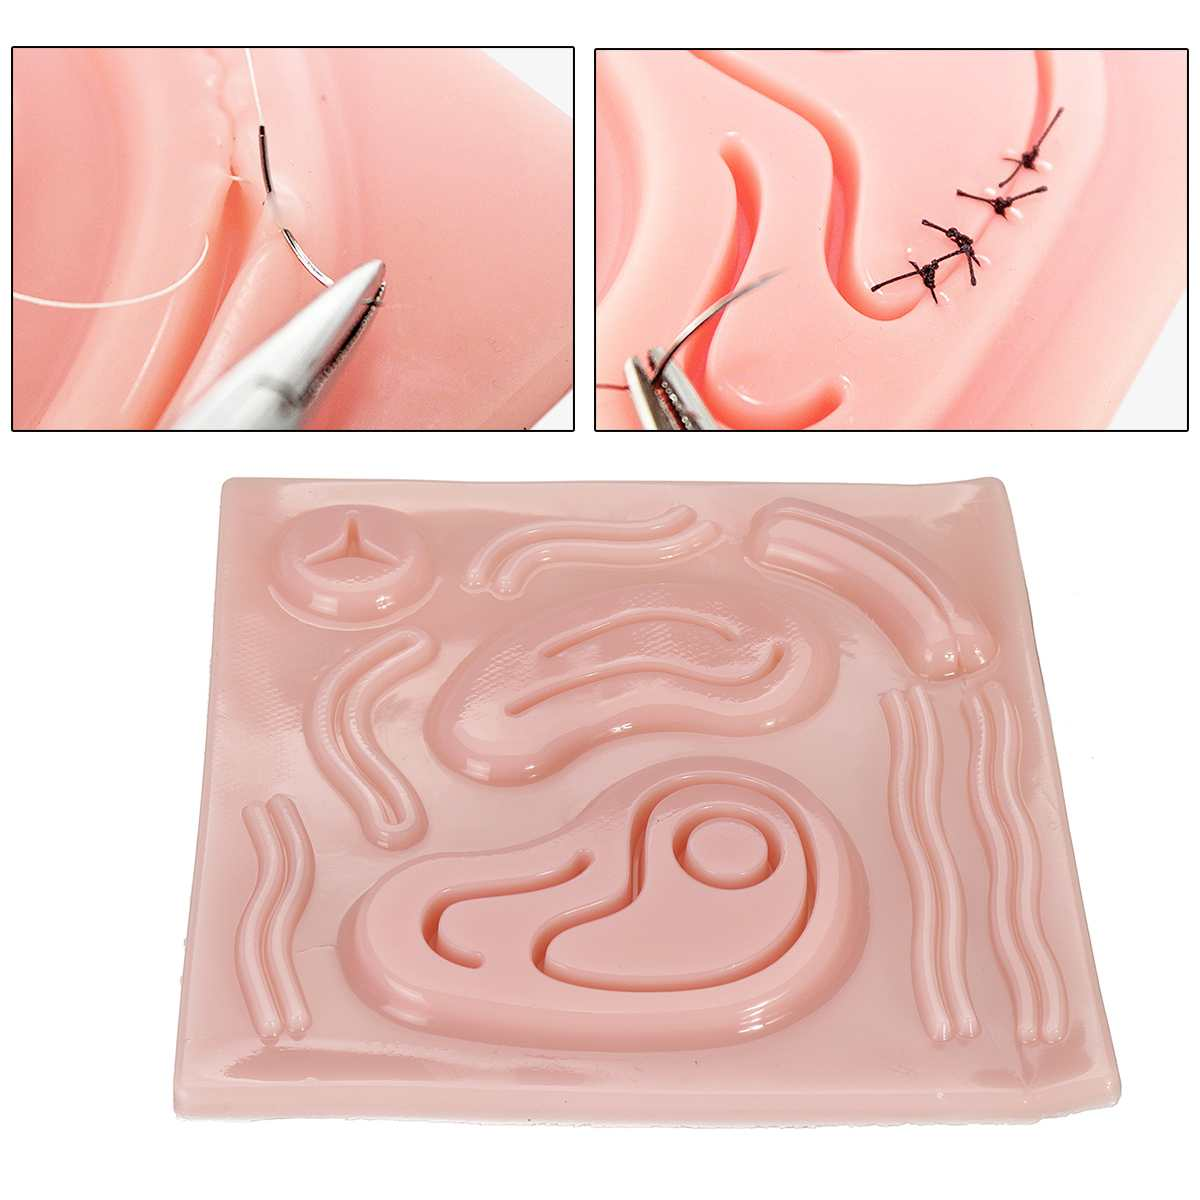 3D Silicone Laparoscopic Simulation Stitching Module Surgical Training Skin Suture Pad Soft Lifelike For Teaching Demonstrations